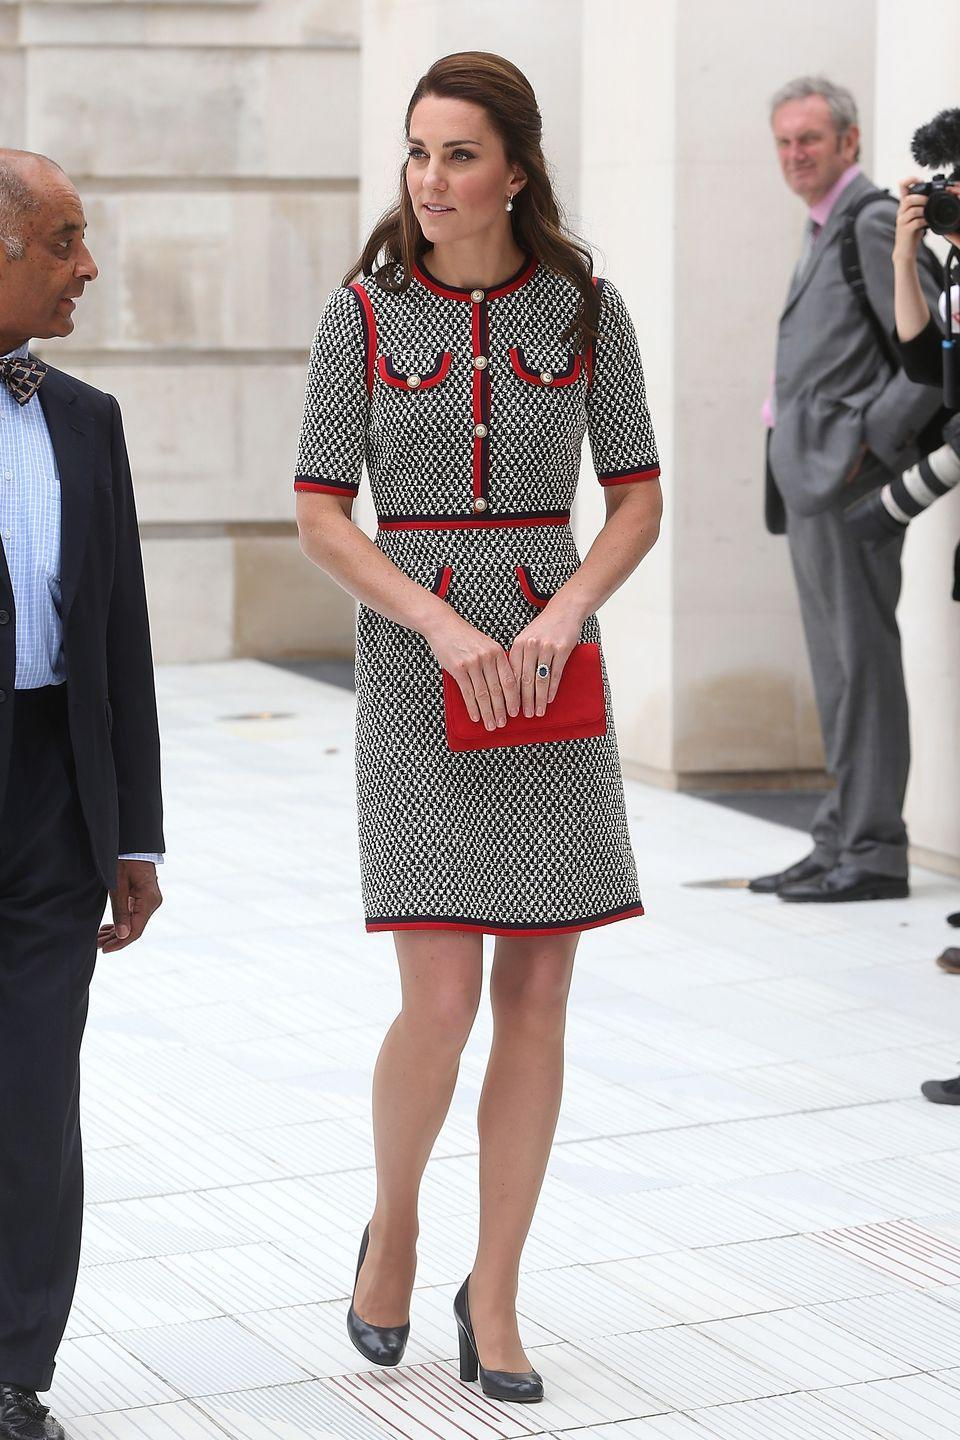 <p>In a Gucci tweed dress, red clutch and black heels at the Victoria and Albert Museum in London. </p>